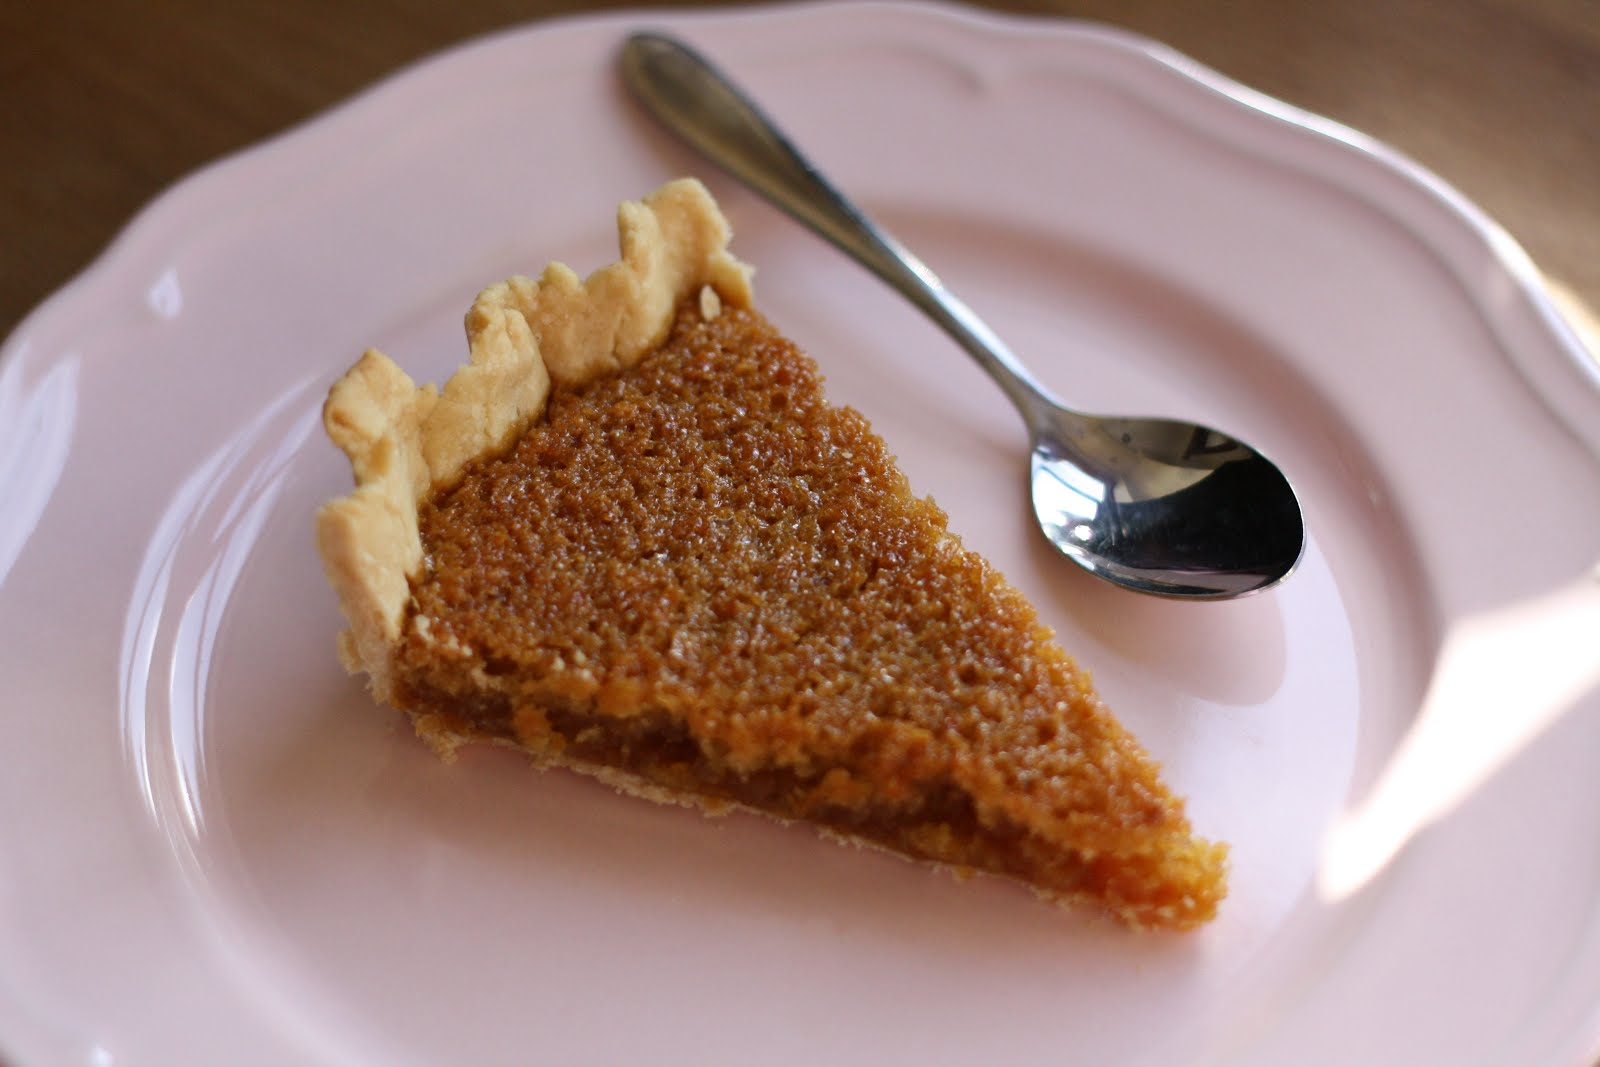 # 6 Make a Treacle Tart